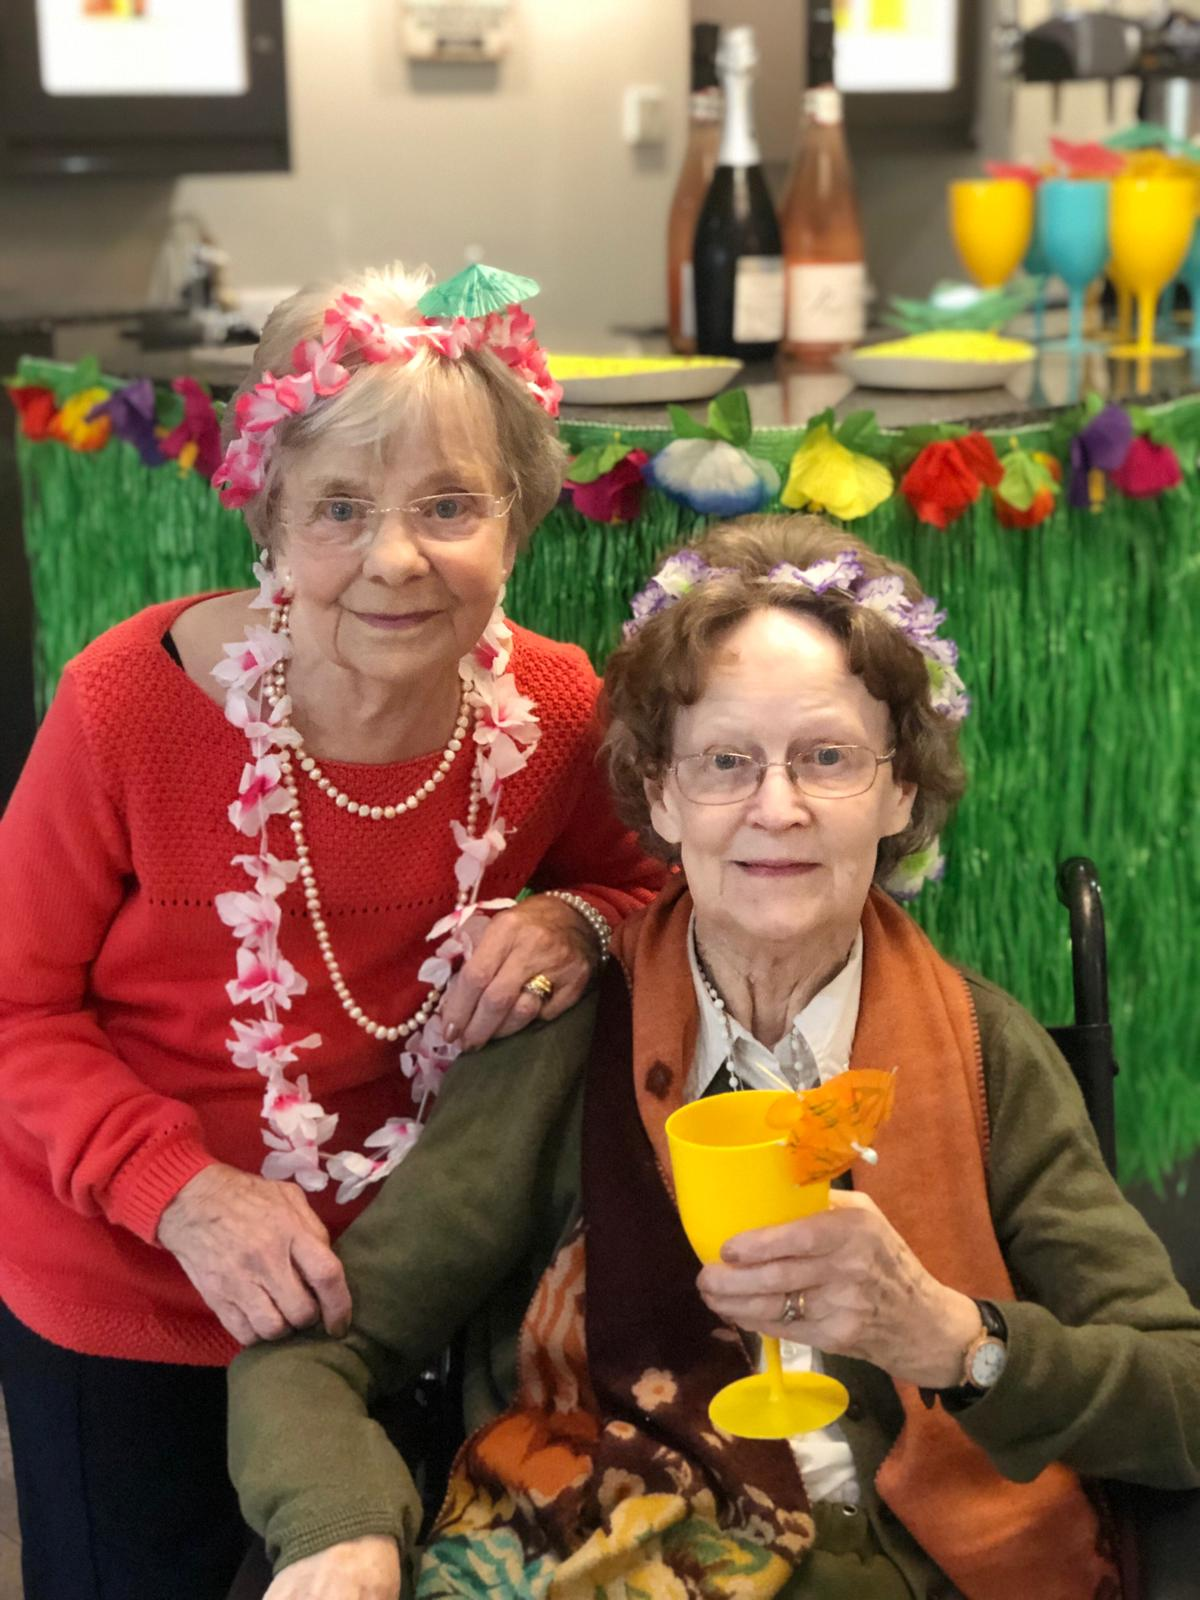 Nellie and Mary at the Hawaiian Party